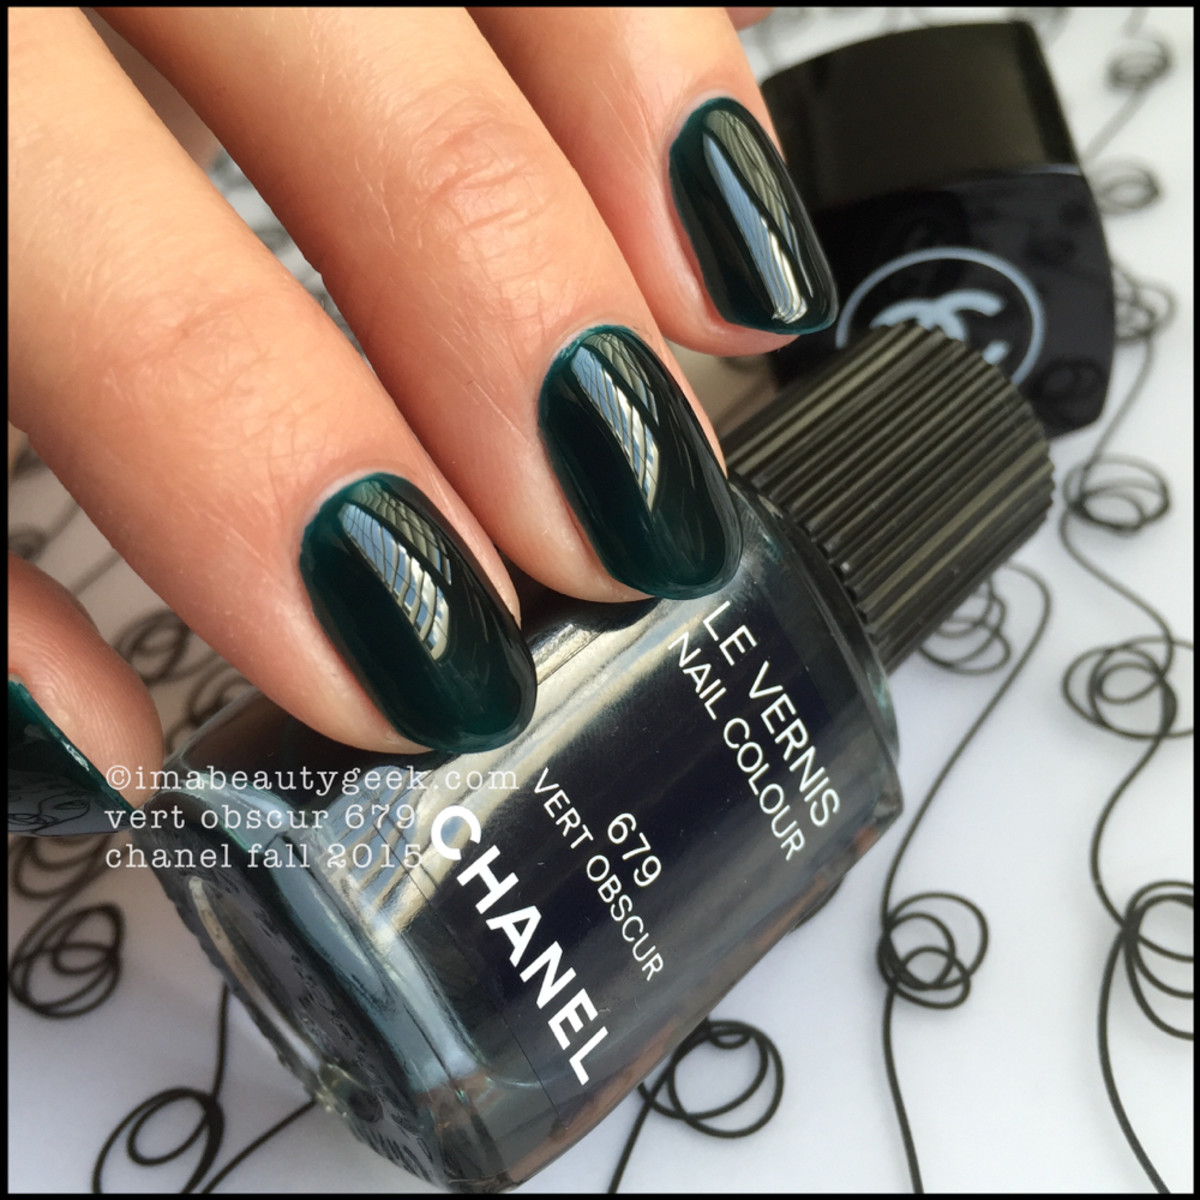 Chanel Fall 2015_Chanel Vert Obscur 679 Nail Vernis